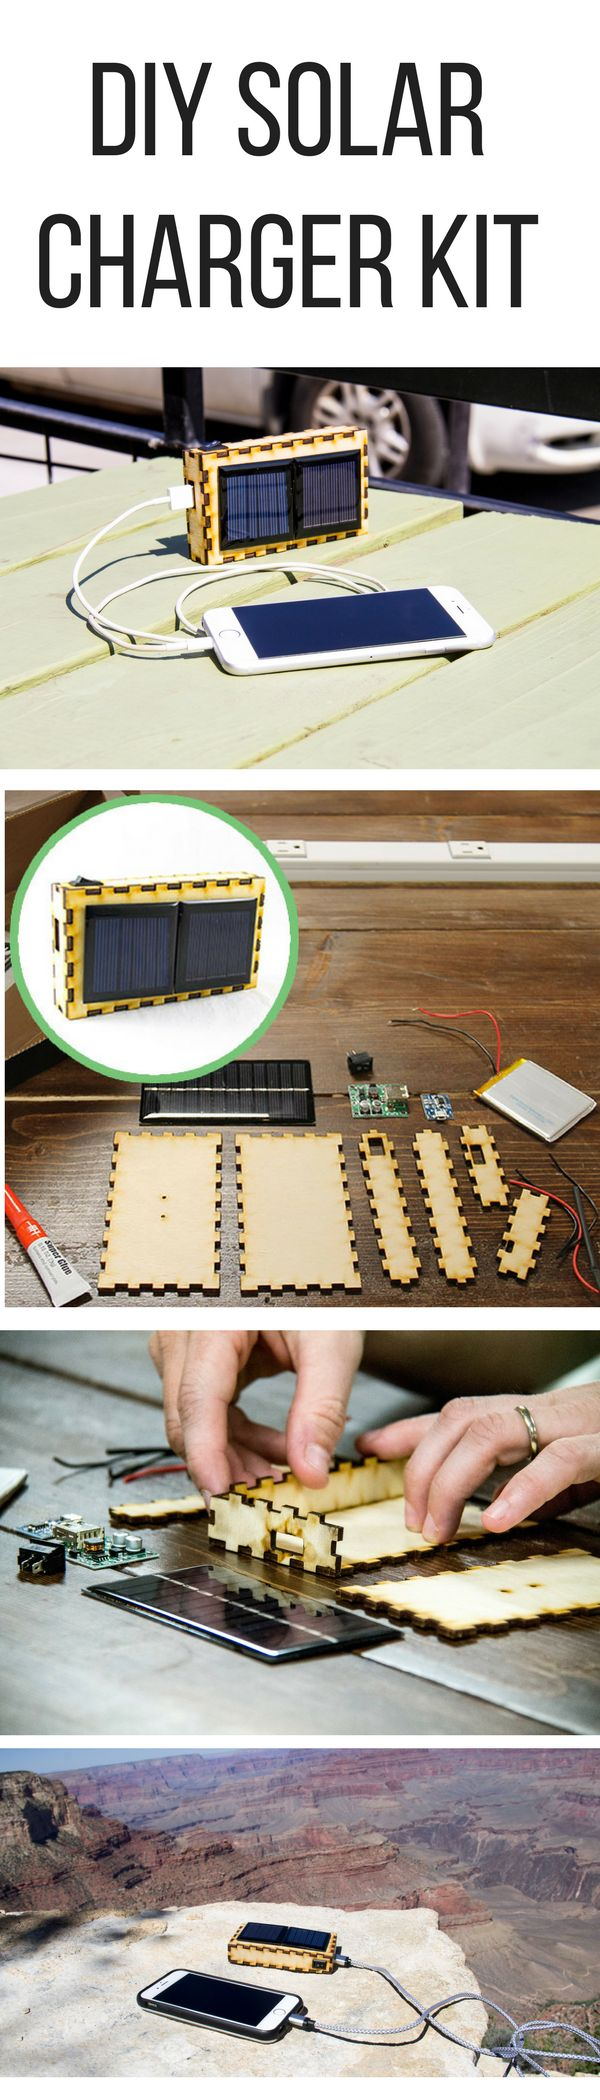 Create this DIY solar charger project for outdoor adventures! This is a unique DIY project perfect afternoon activity or gift! Great for a makerspace, classroom or a gift for kids or adults of any age.